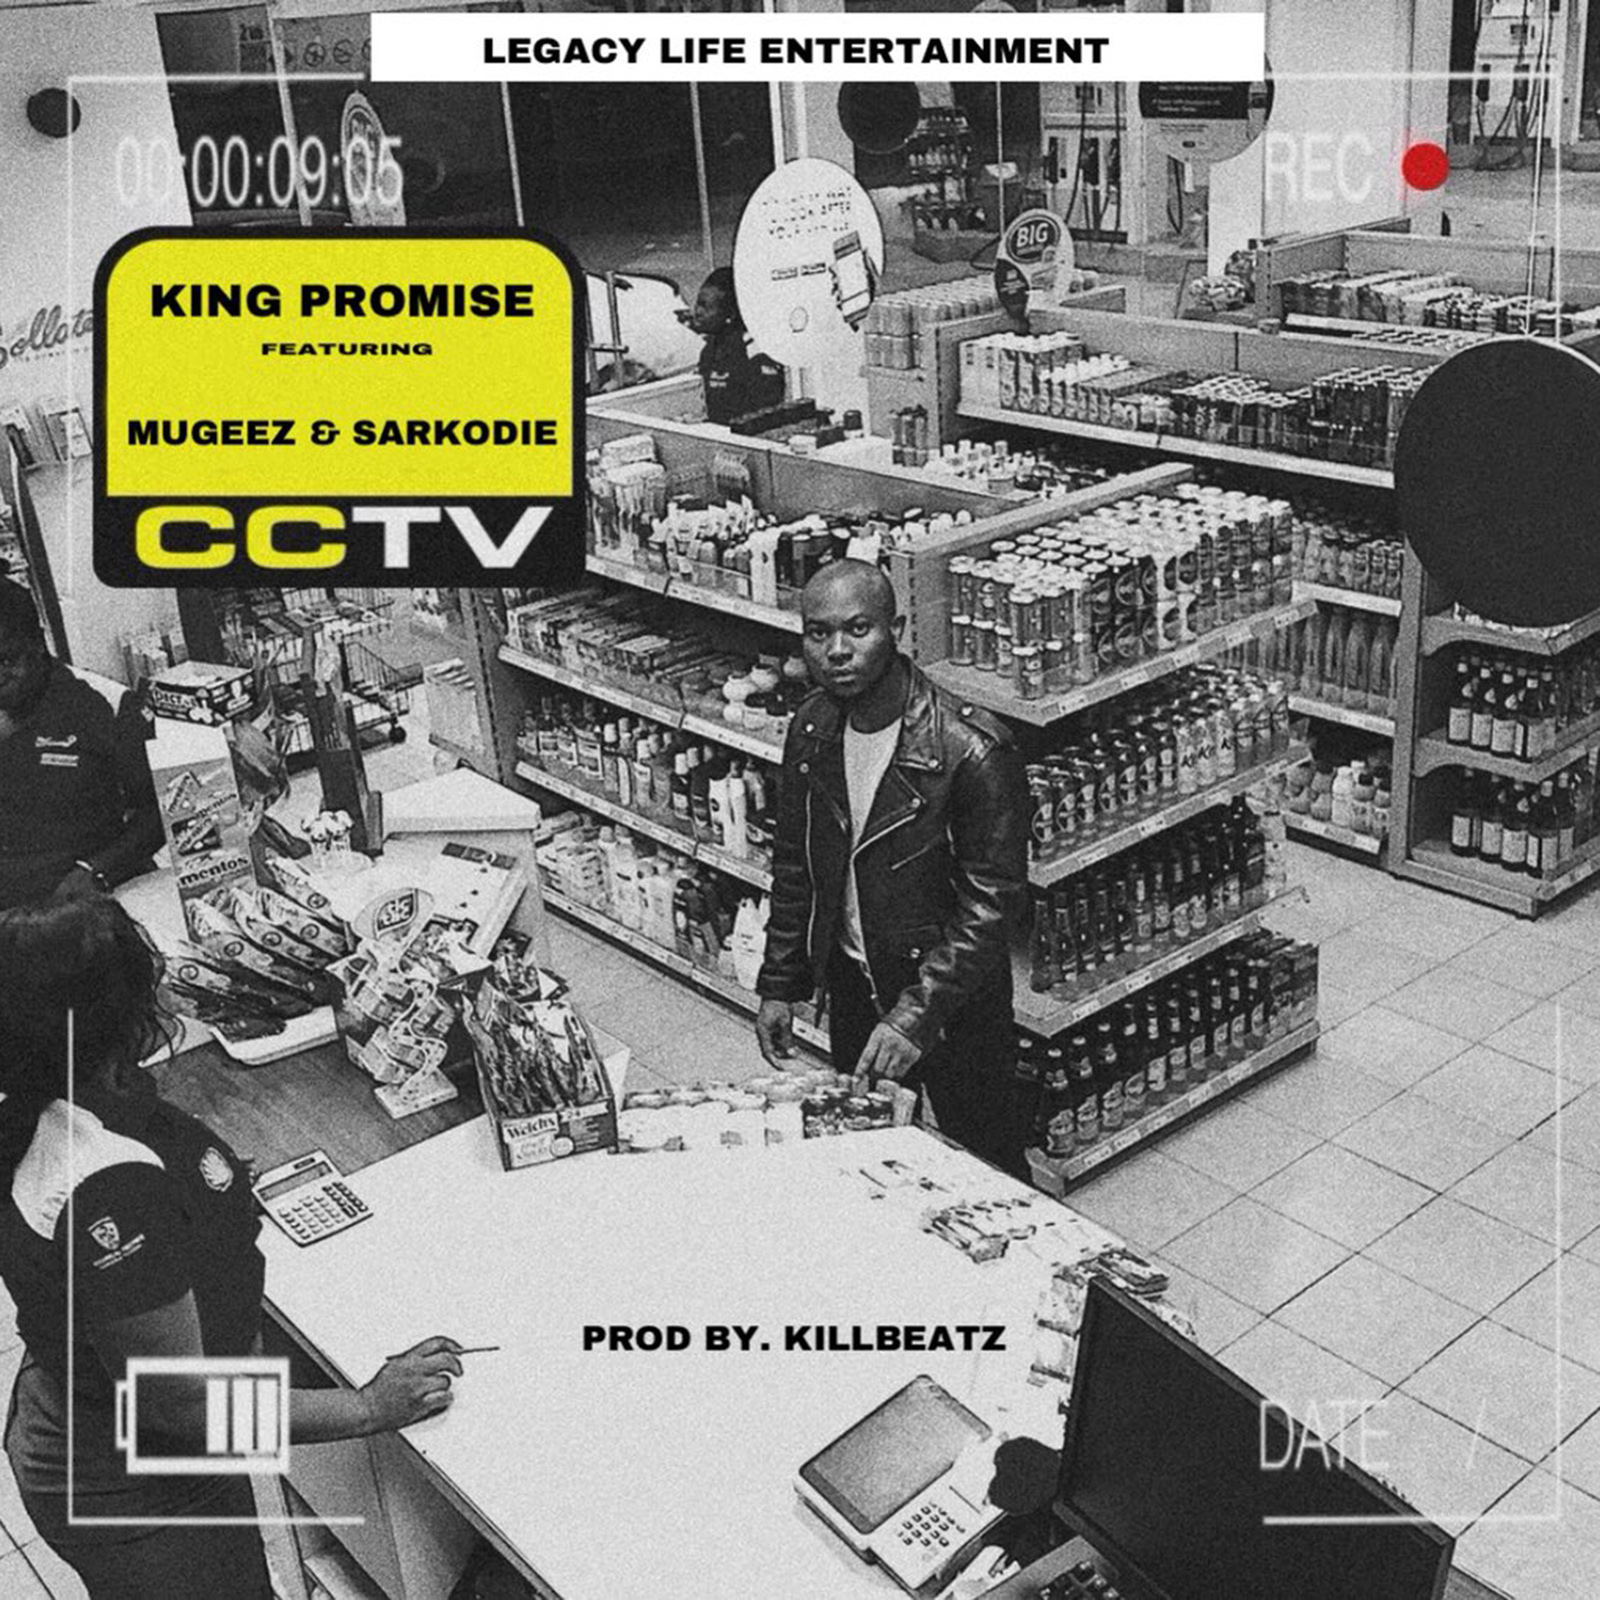 CCTV by King Promise feat. Mugeez & Sarkodie